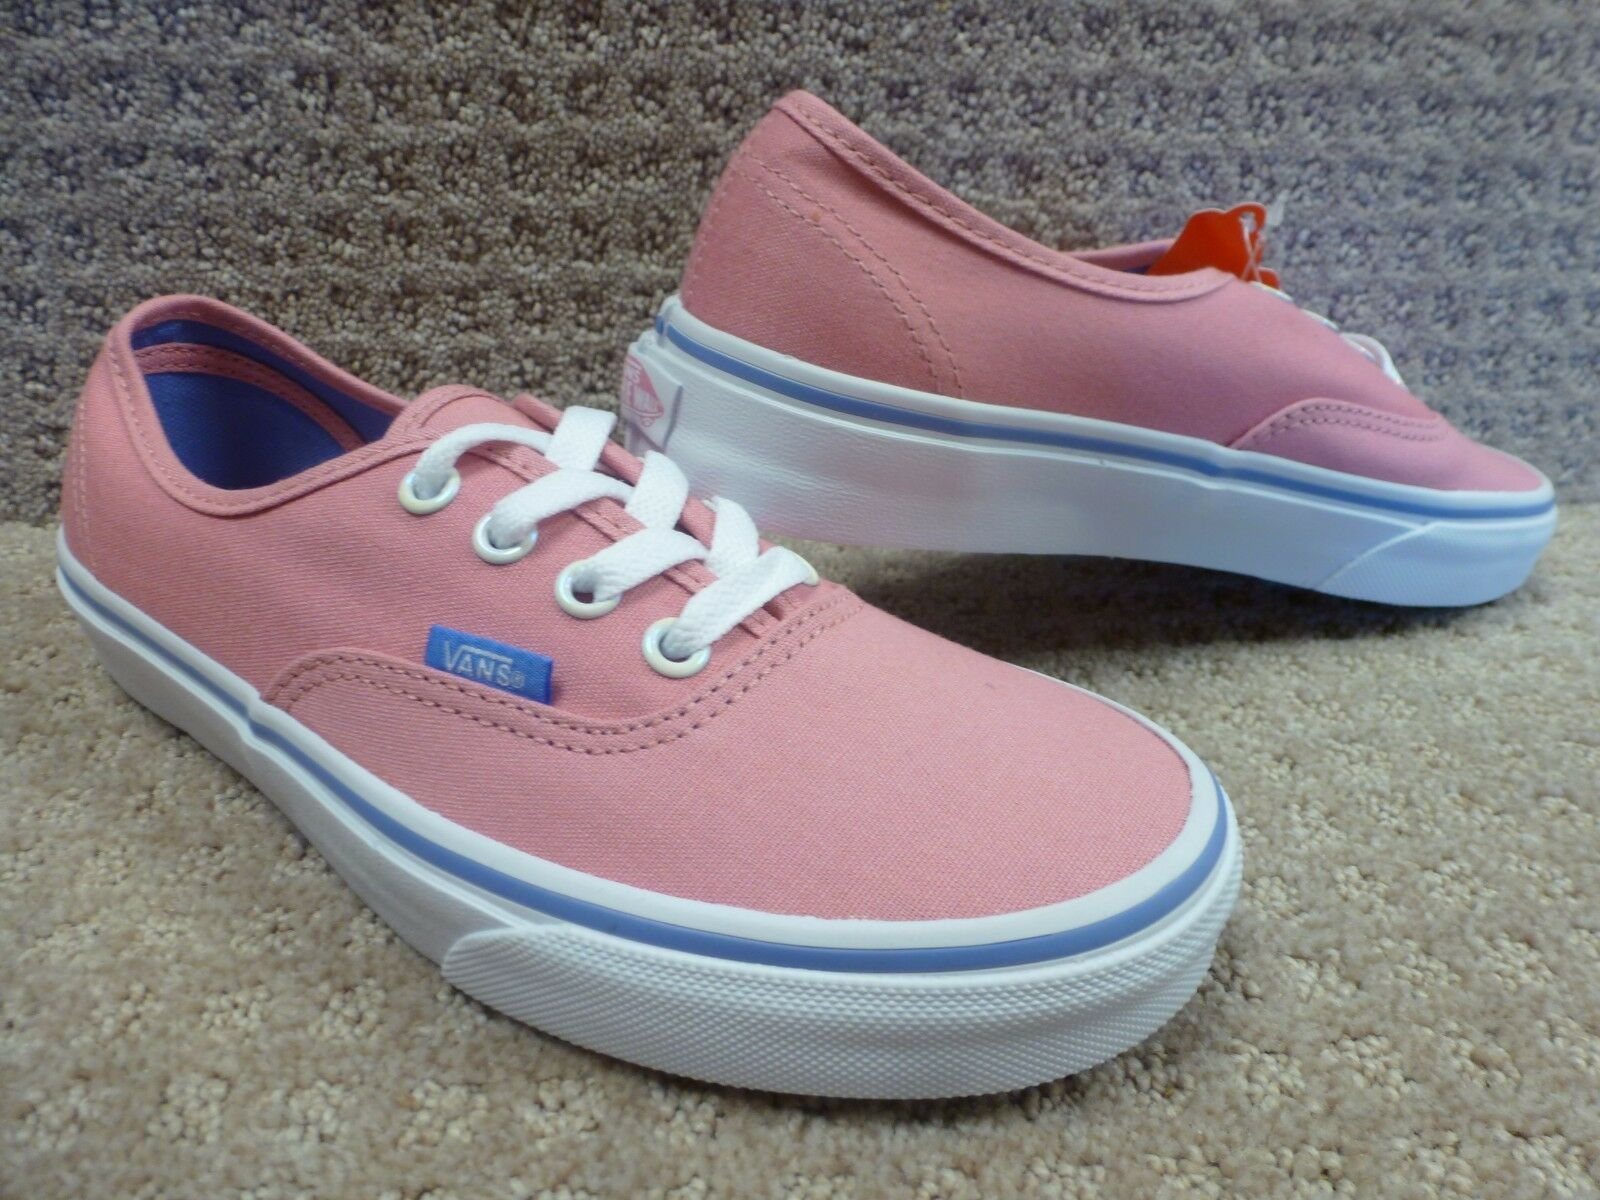 Vans Men's shoes's  Authentic   -- (Iridescent Eyelets) Wild pink , Size 5.5